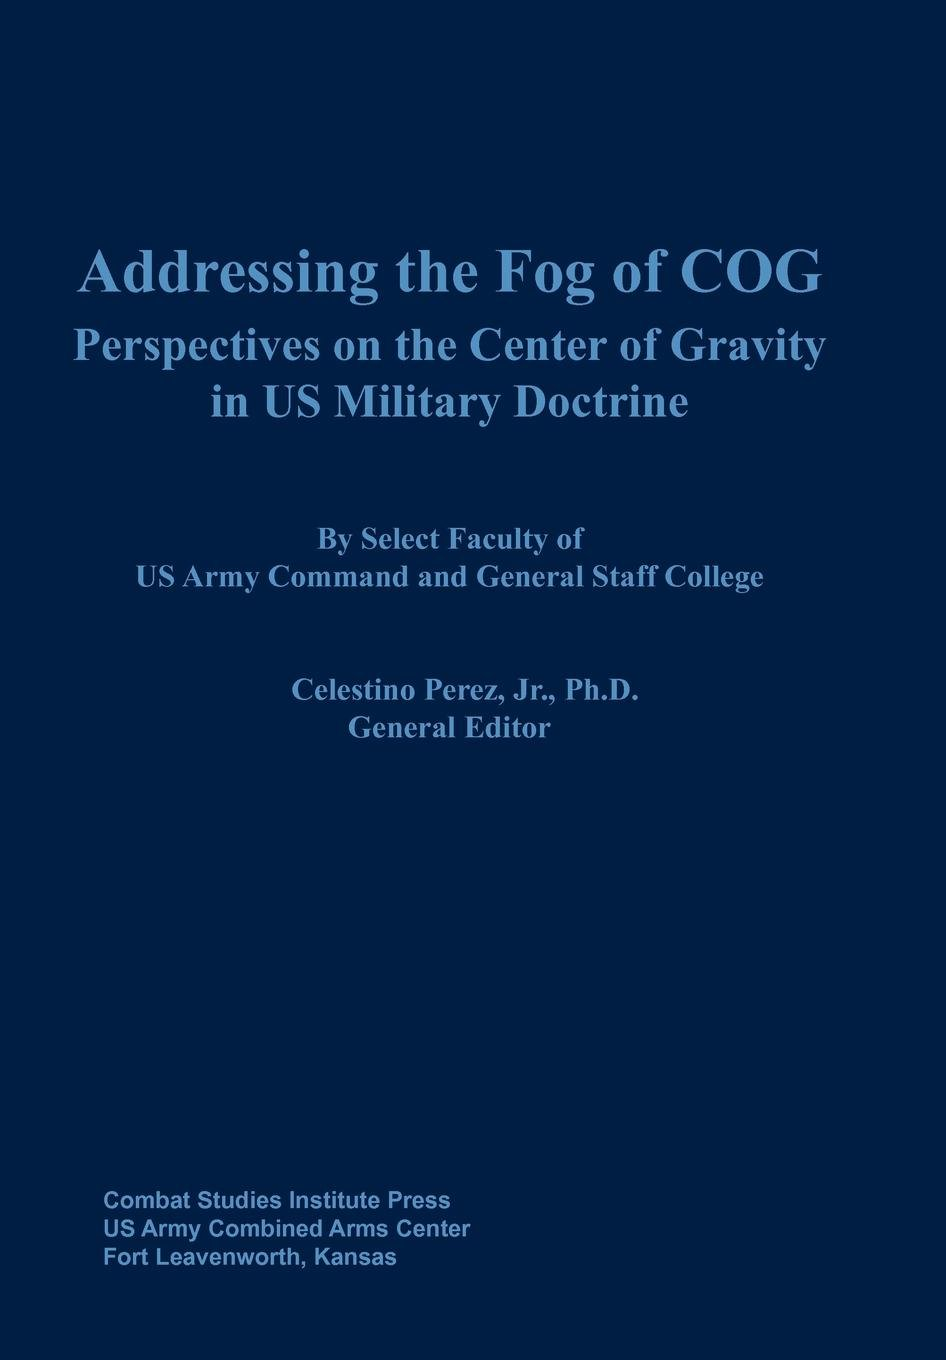 Download Addressing the Fog of COG: Perspectives on the Center of Gravity in US Military Doctrine ebook